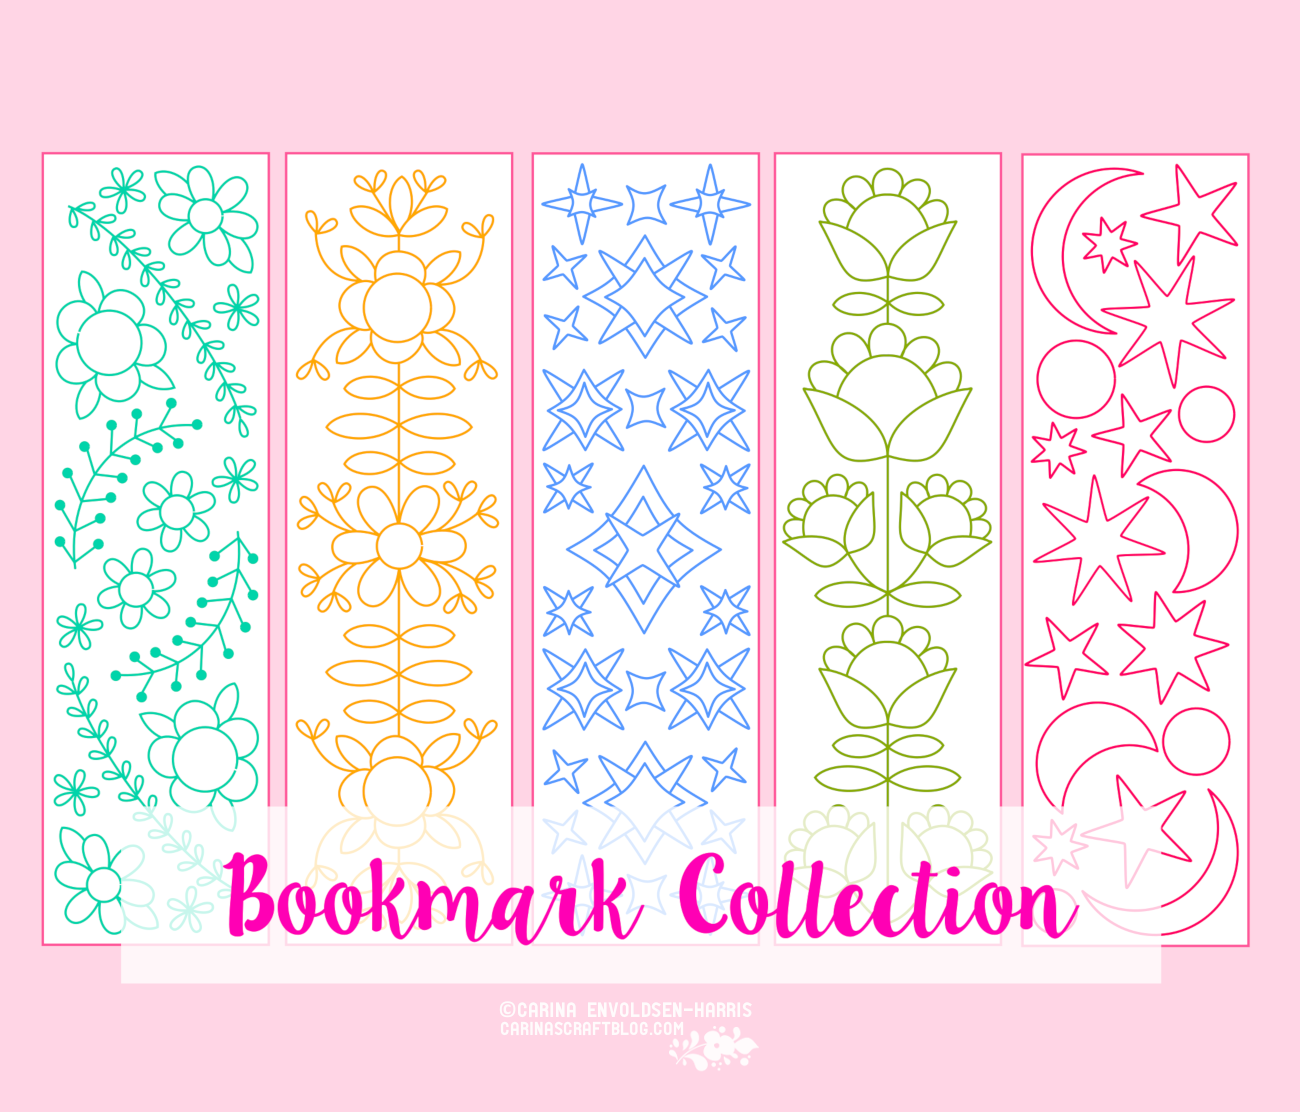 Bookmarks Collection Embroidery Pattern